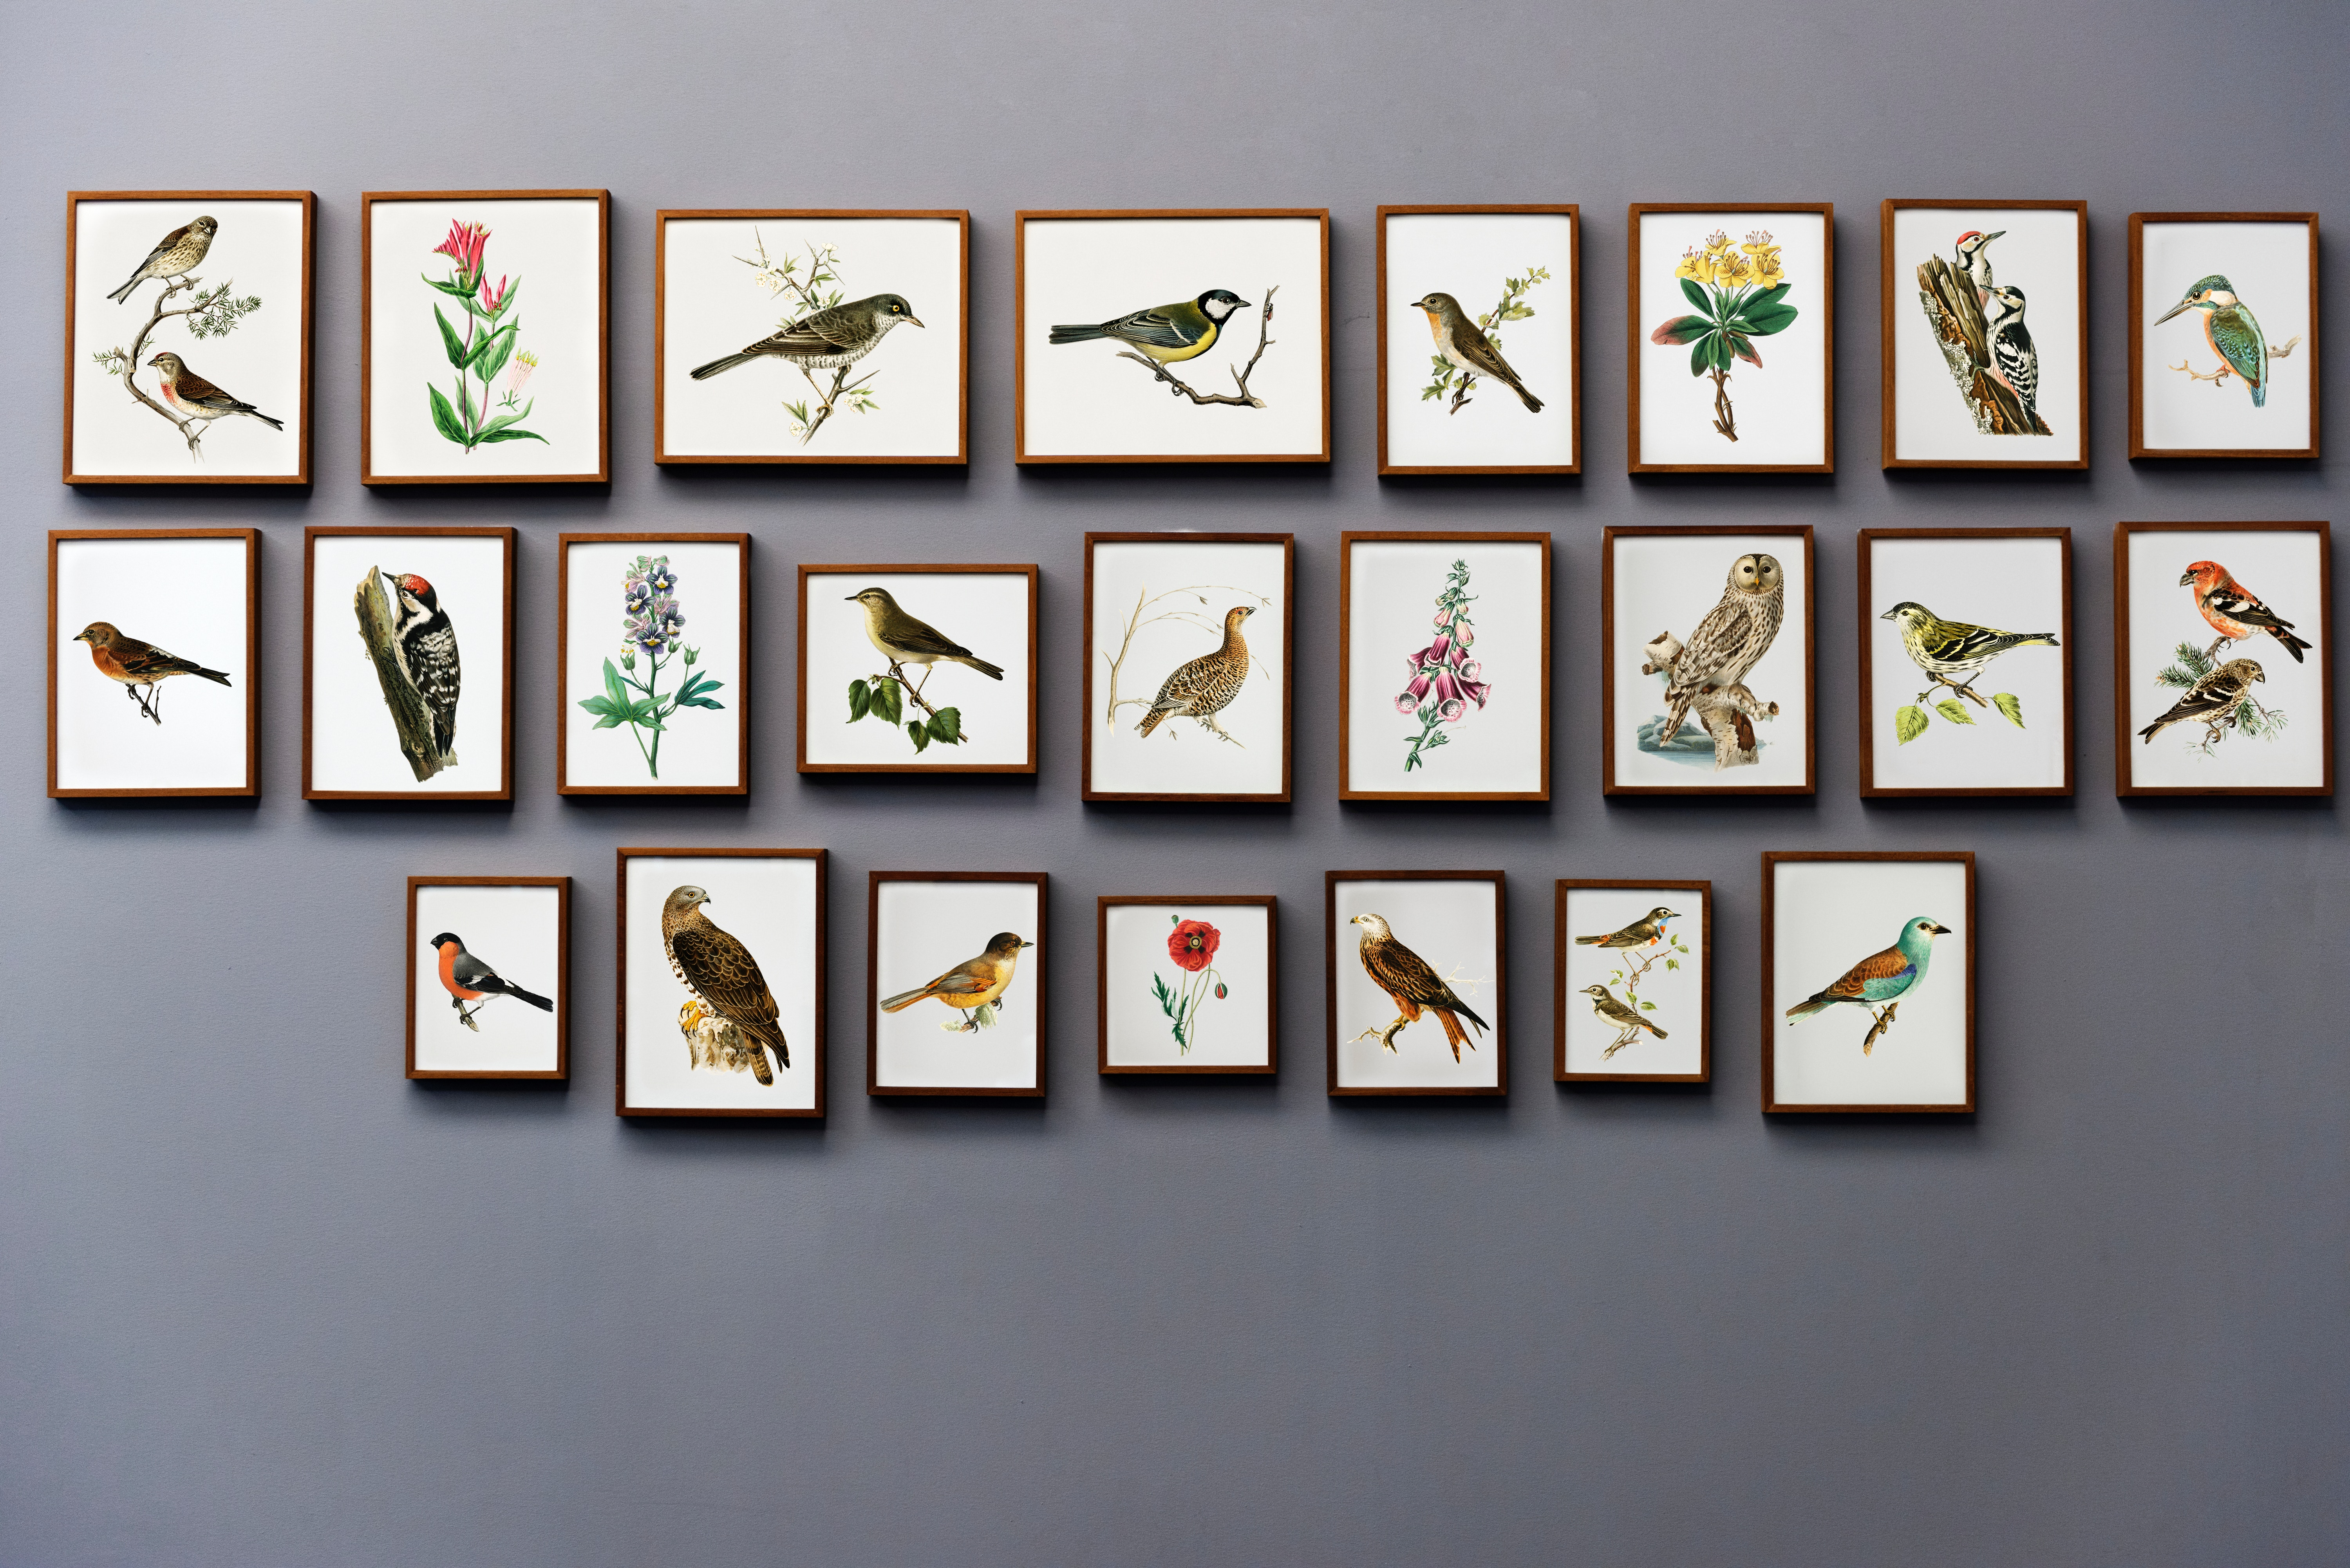 Collection of framed bird paintings on grey wall